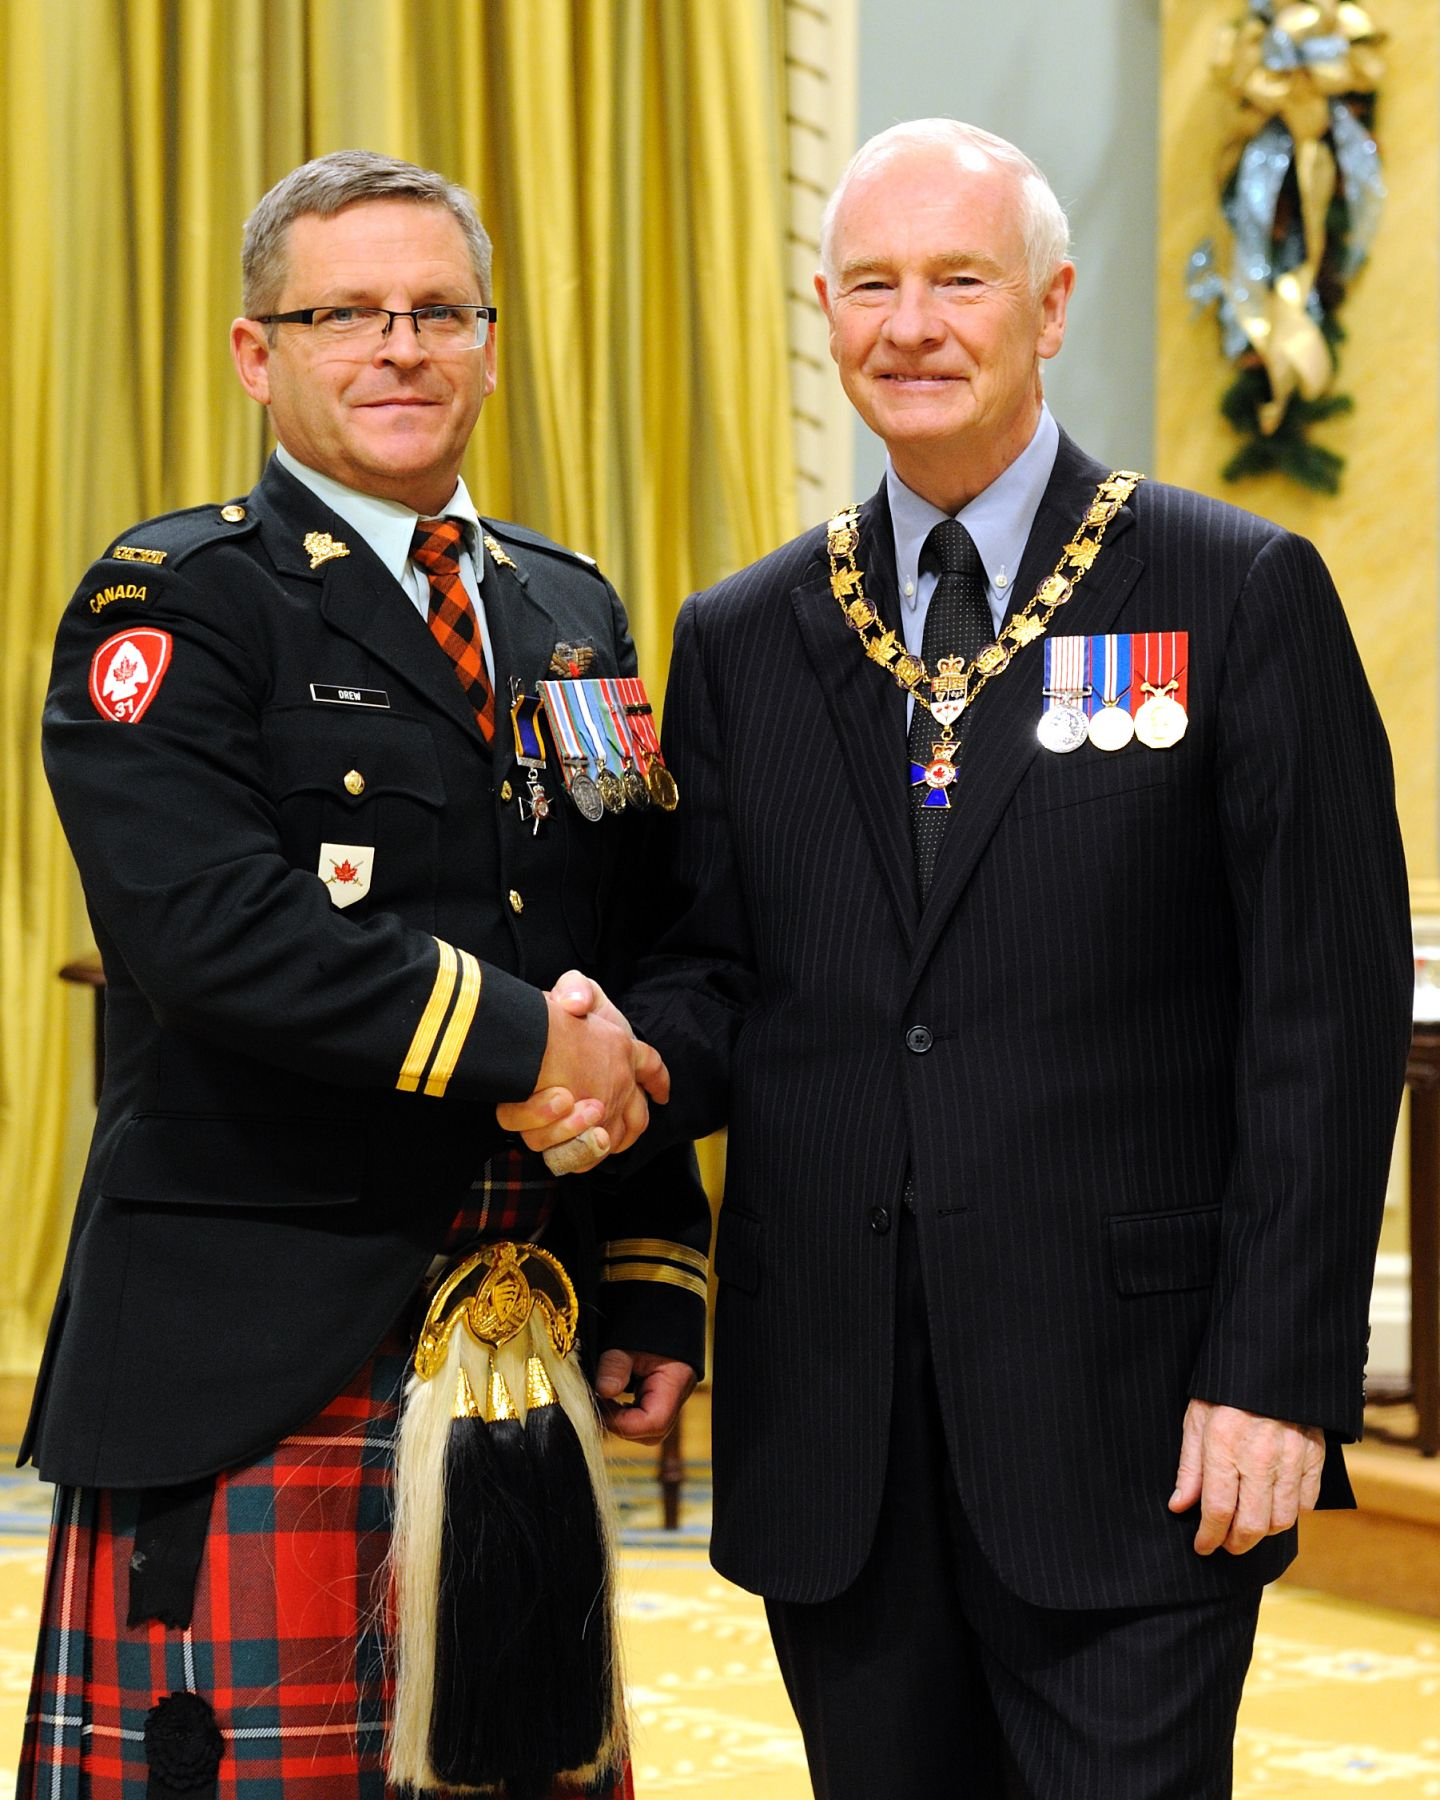 His Excellency presented the Order of Military Merit at the Member level (M.M.M.) to Chief Warrant Officer Kirk Drew, M.M.M., C.D., The Essex and Kent Scottish Regiment, Windsor, Ontario.